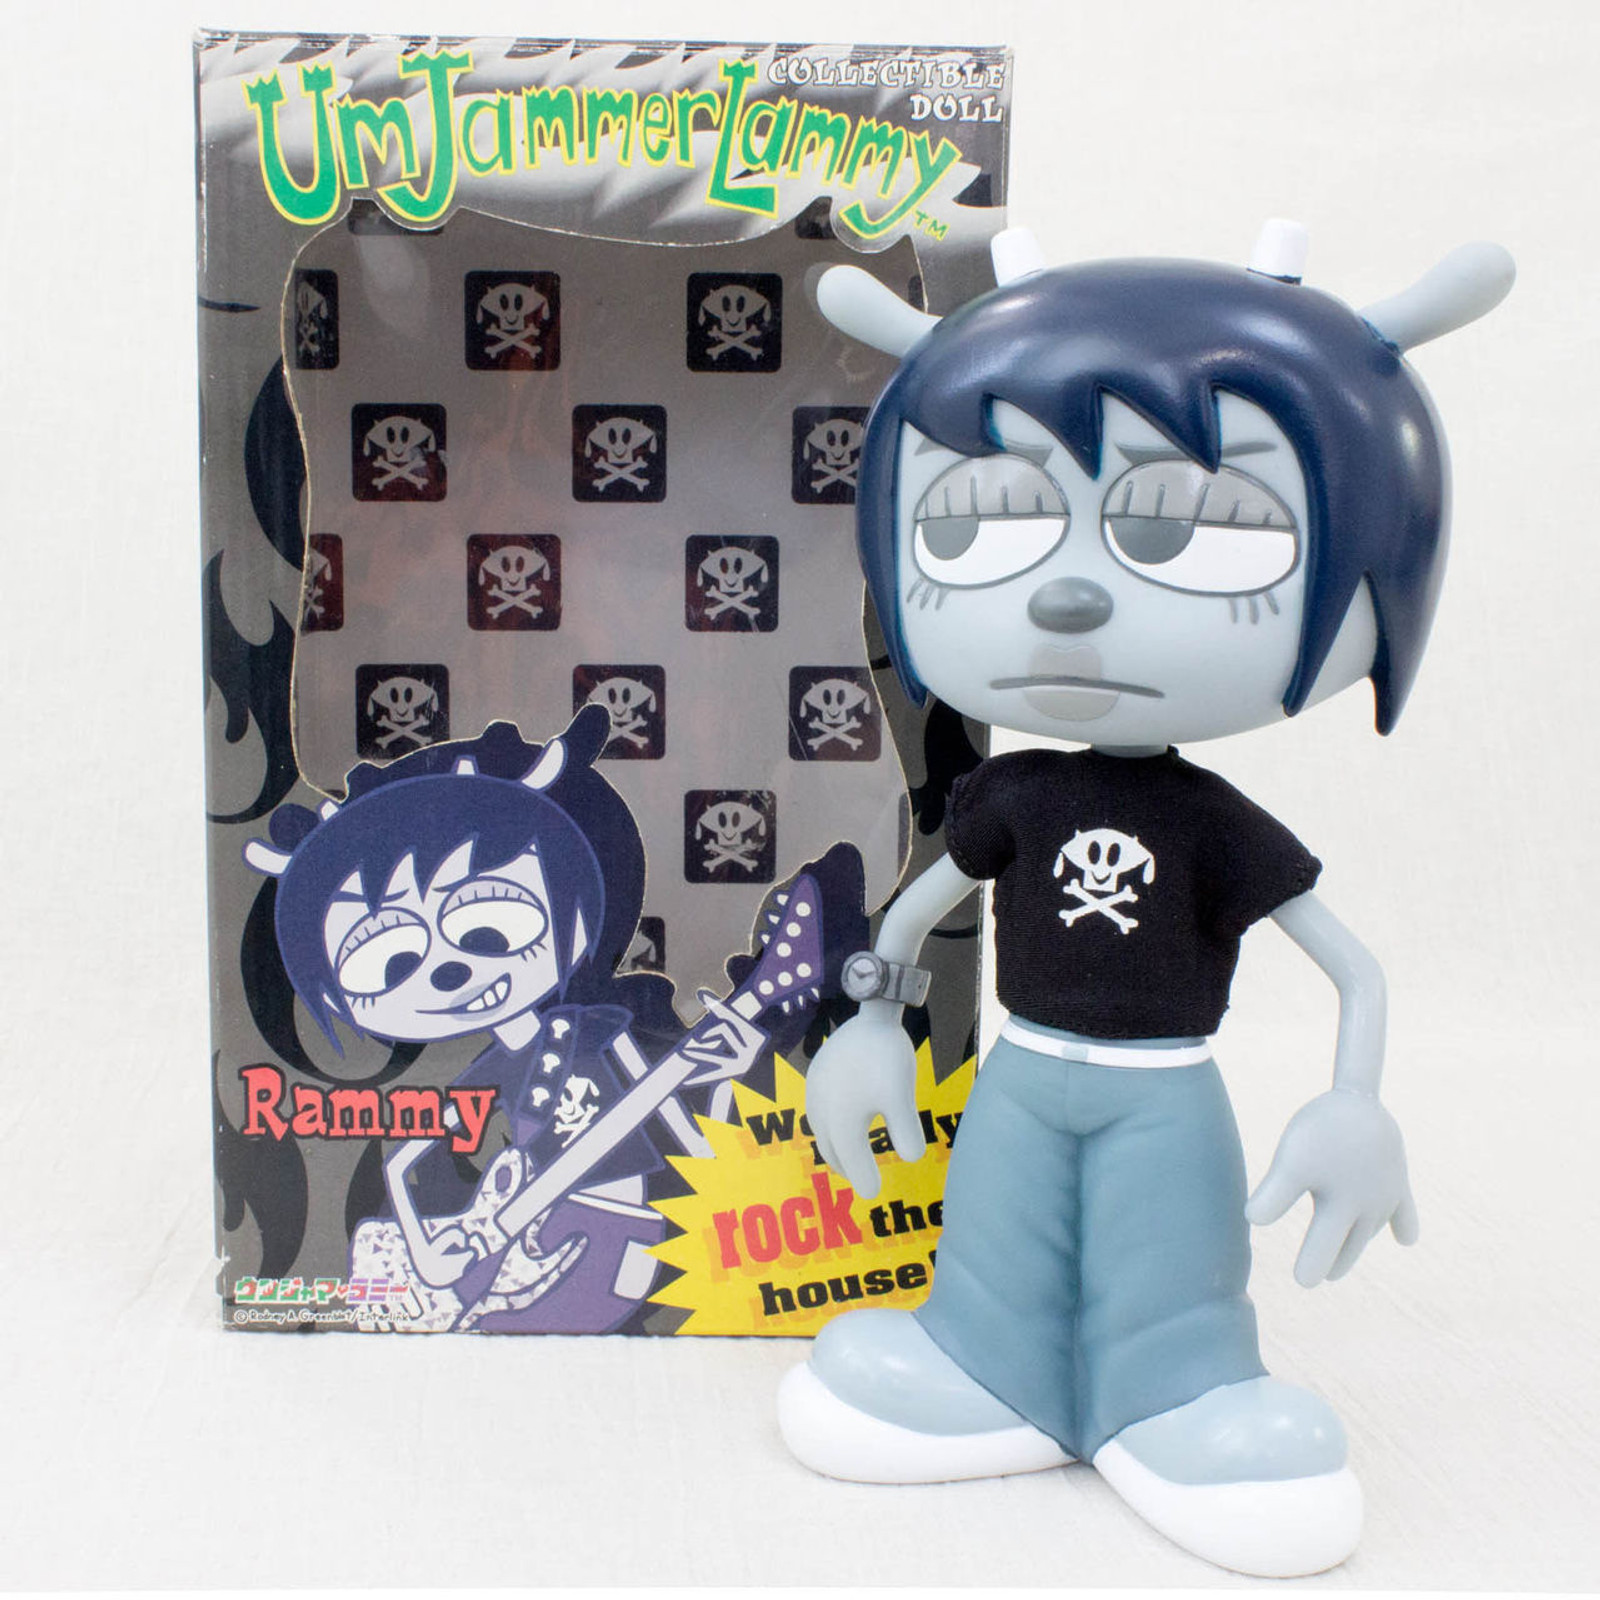 UmJammer Lammy RAMMY Collectible Doll Figure Medicom JAPAN Parappa The Rapper